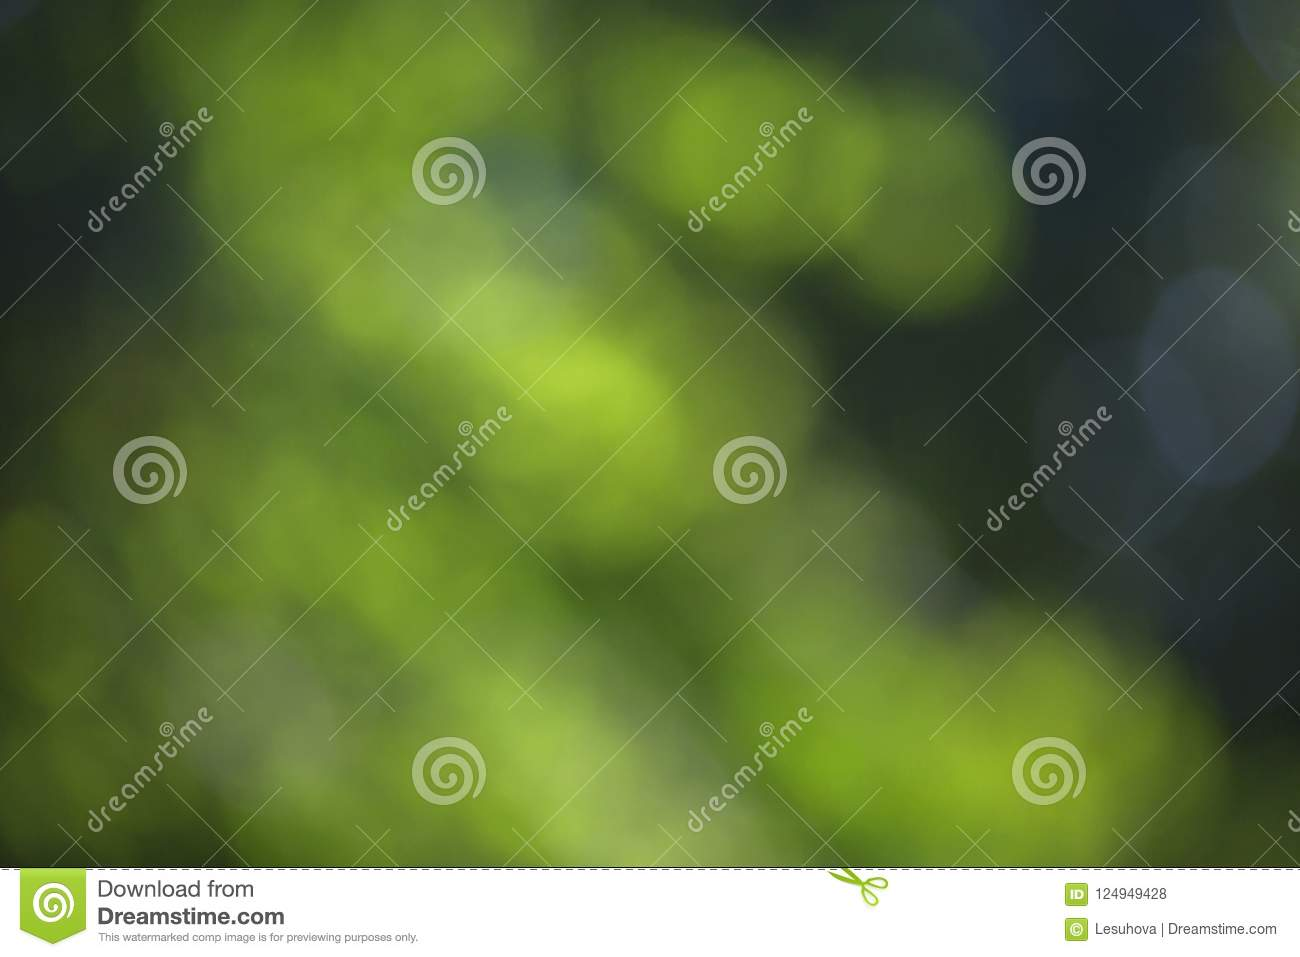 Blurred bokeh effect on a background of green tree leaves